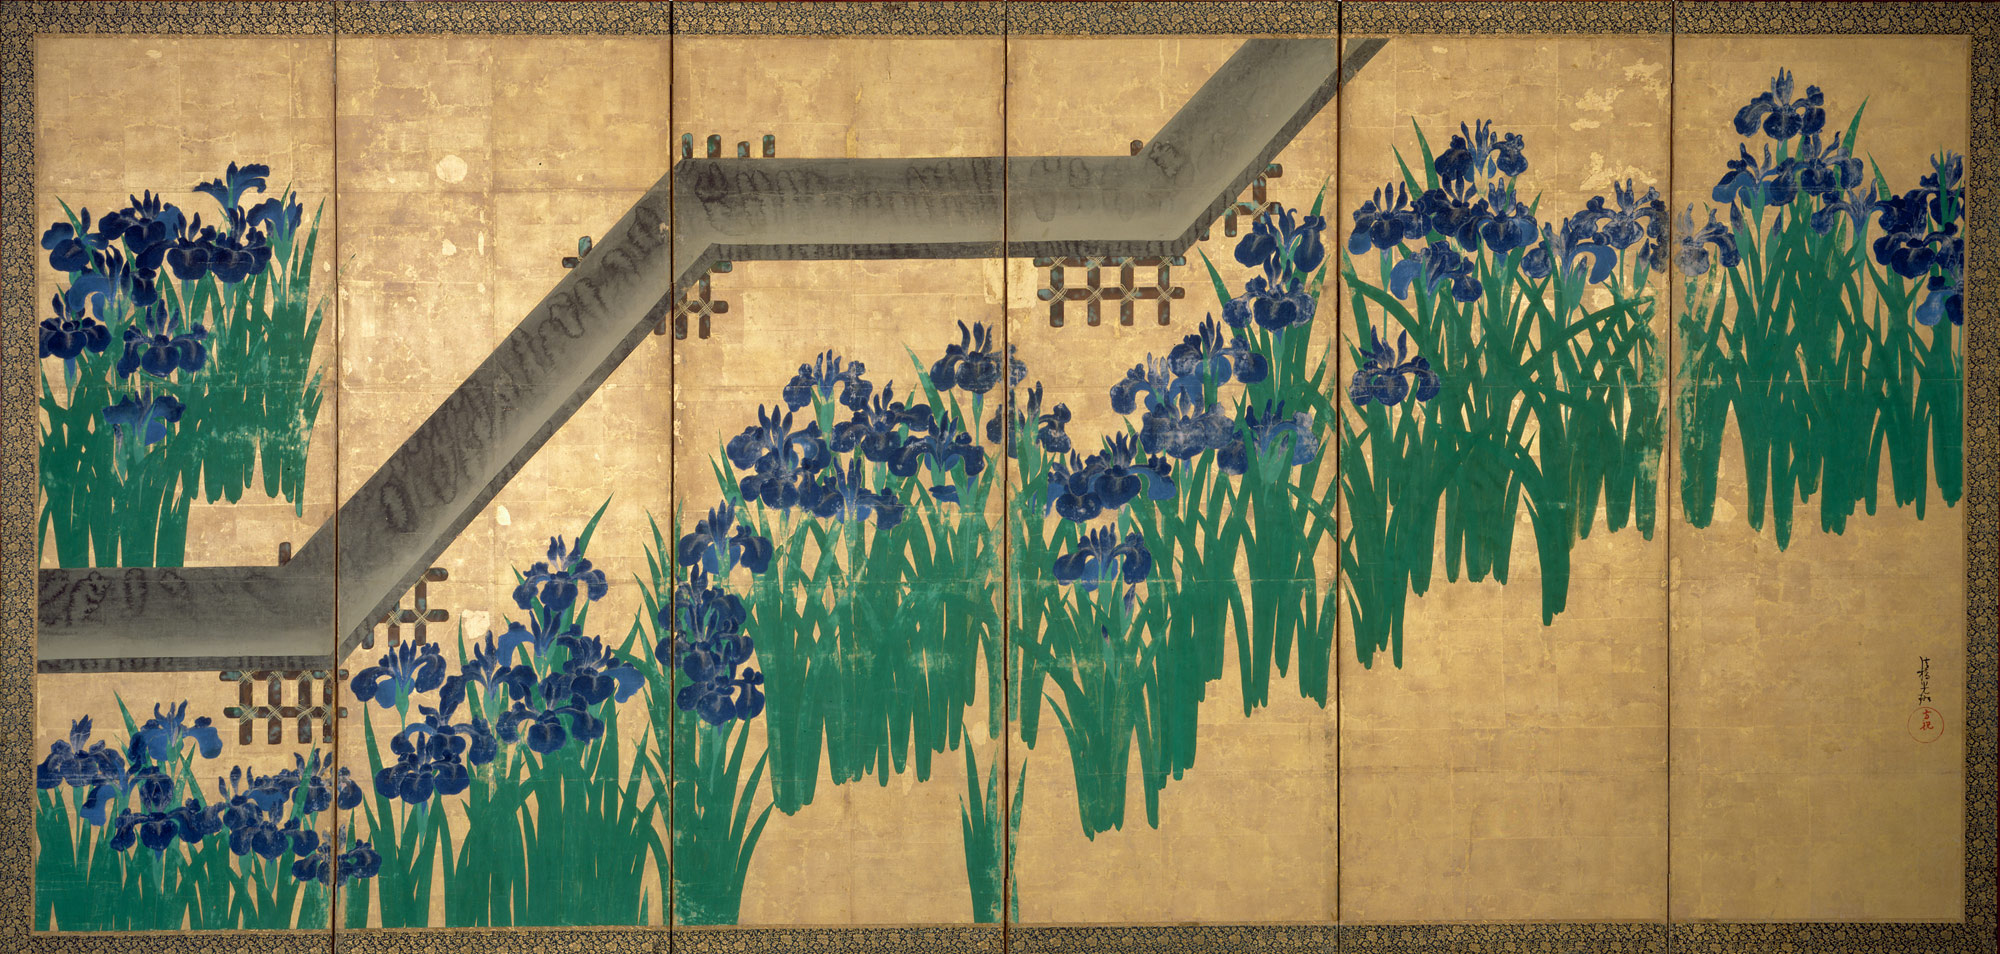 Yamato E Painting Essay Heilbrunn Timeline Of Art History The Vintage Story Flower Japanese Chrysantemum 2 Irises At Yatsuhashi Eight Bridges